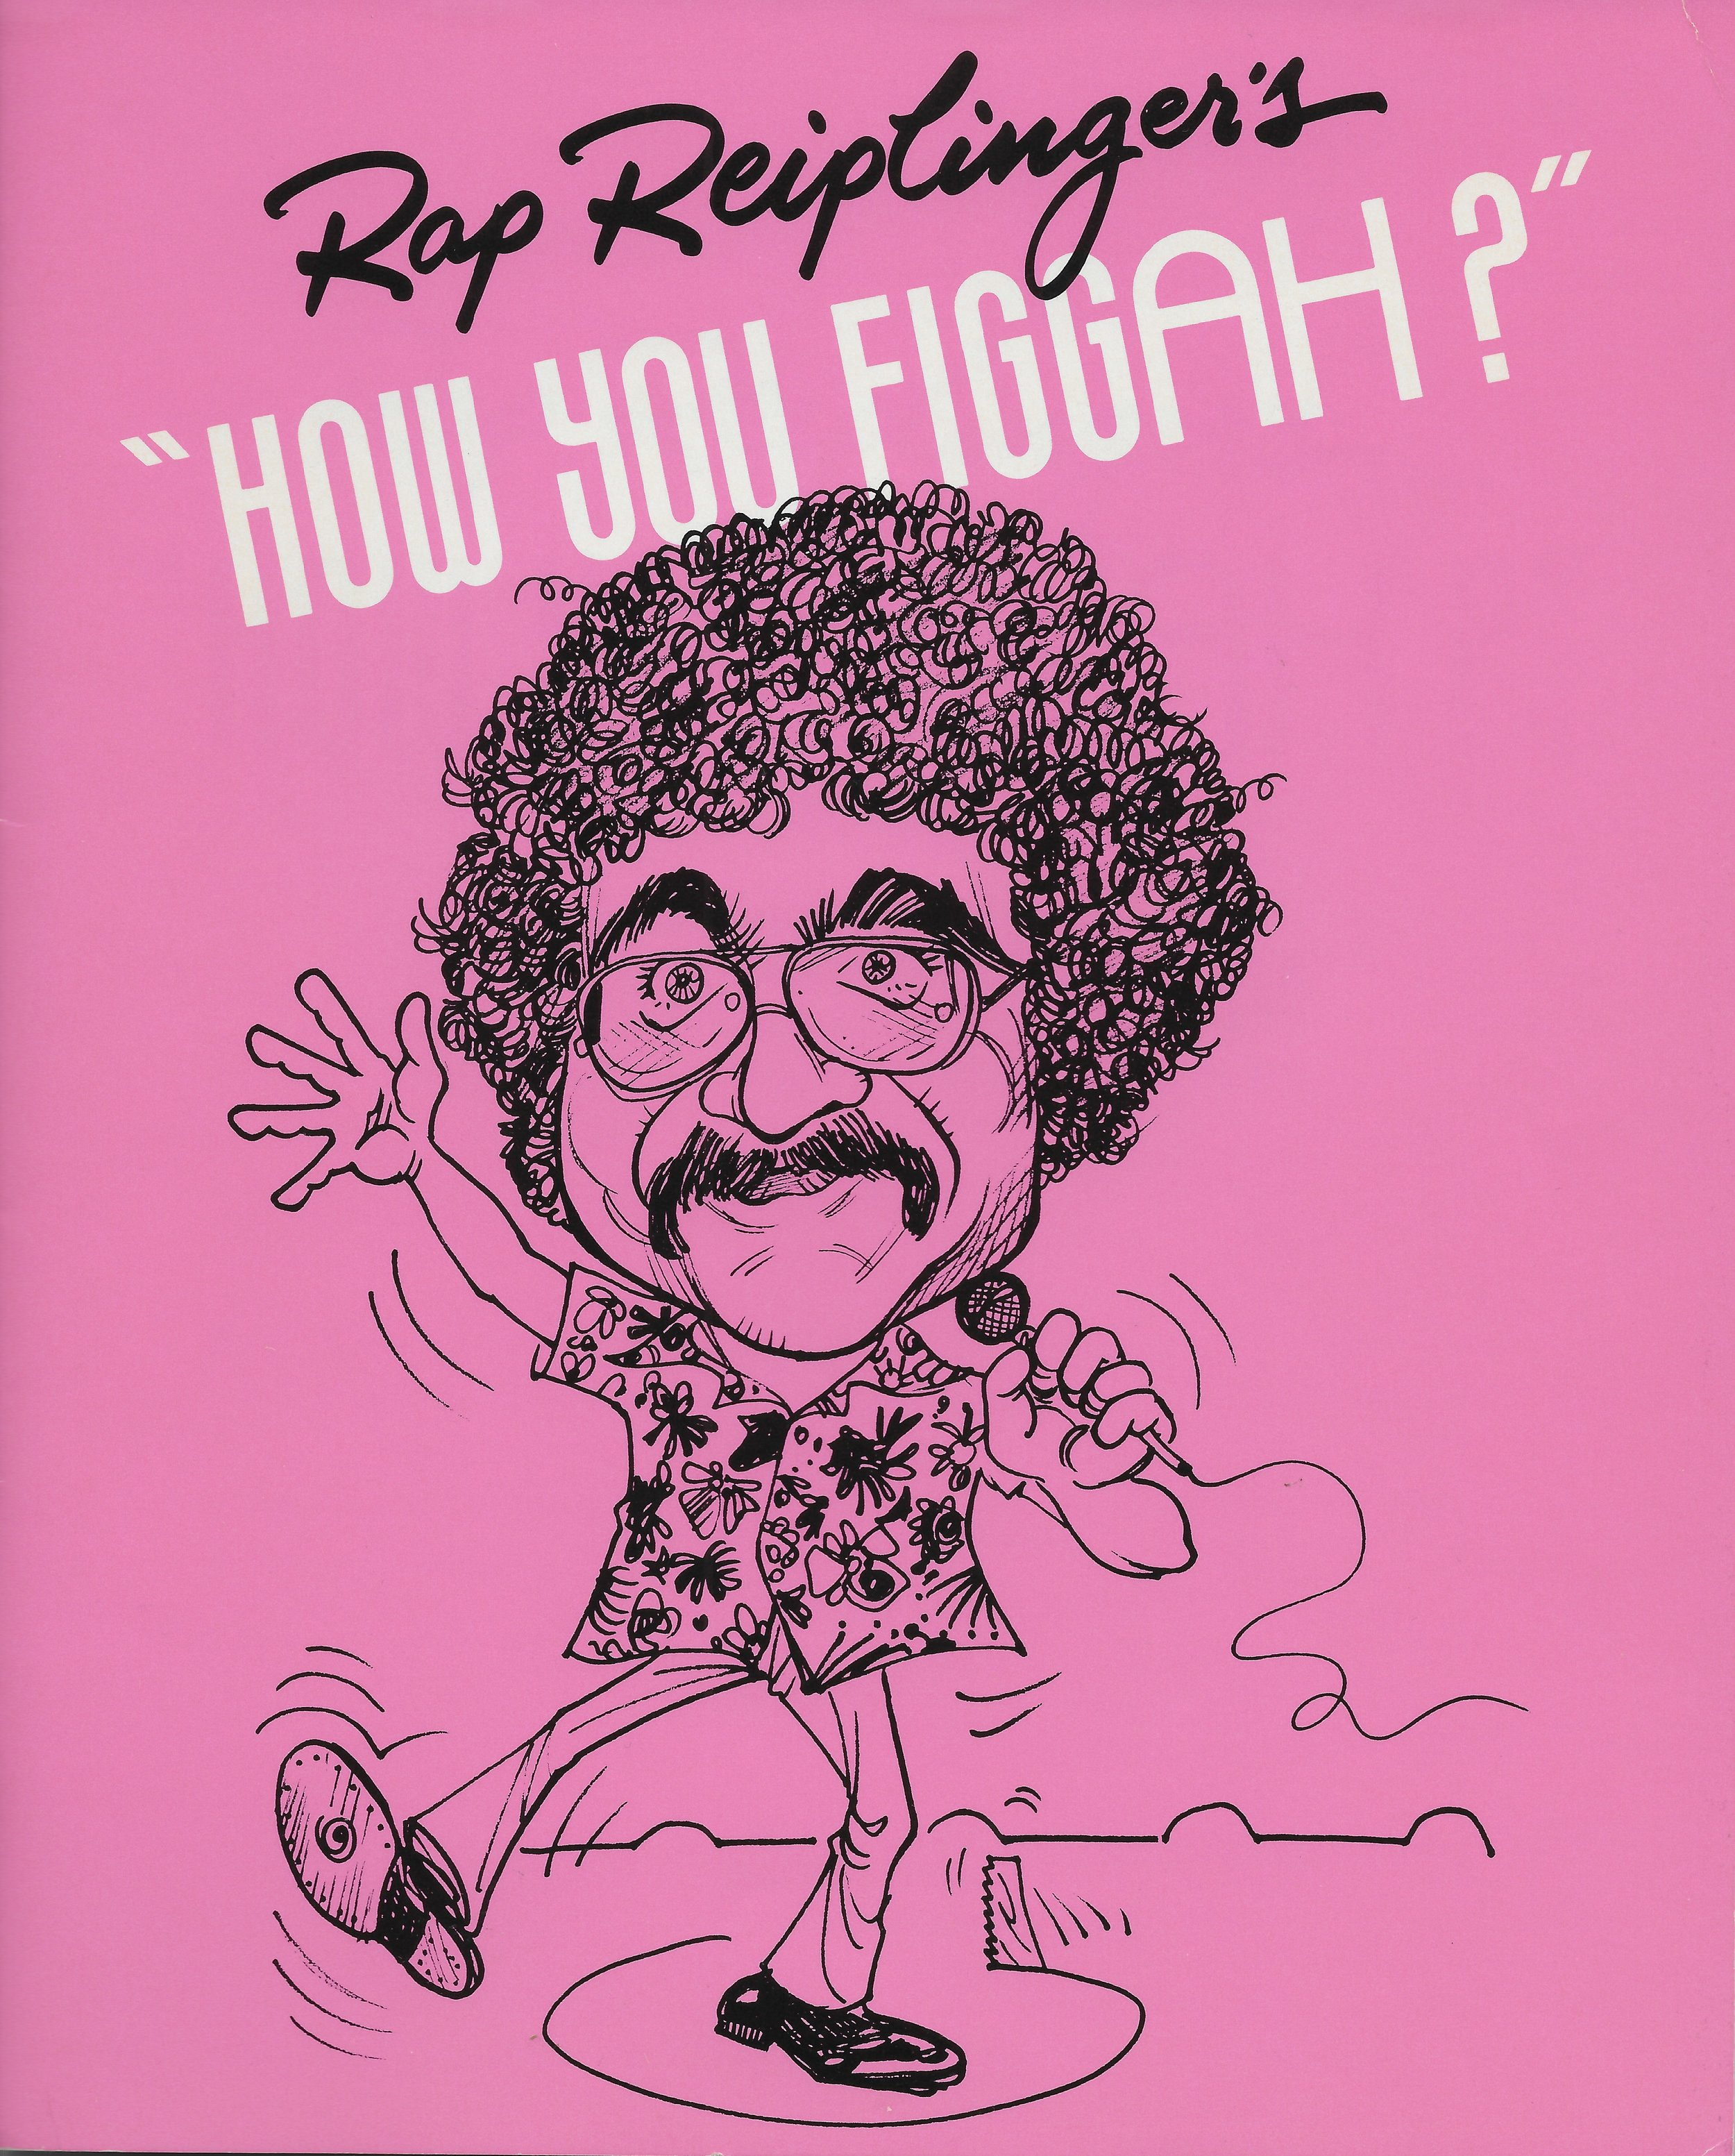 The cover of  How You Figgah?  published in 1985.